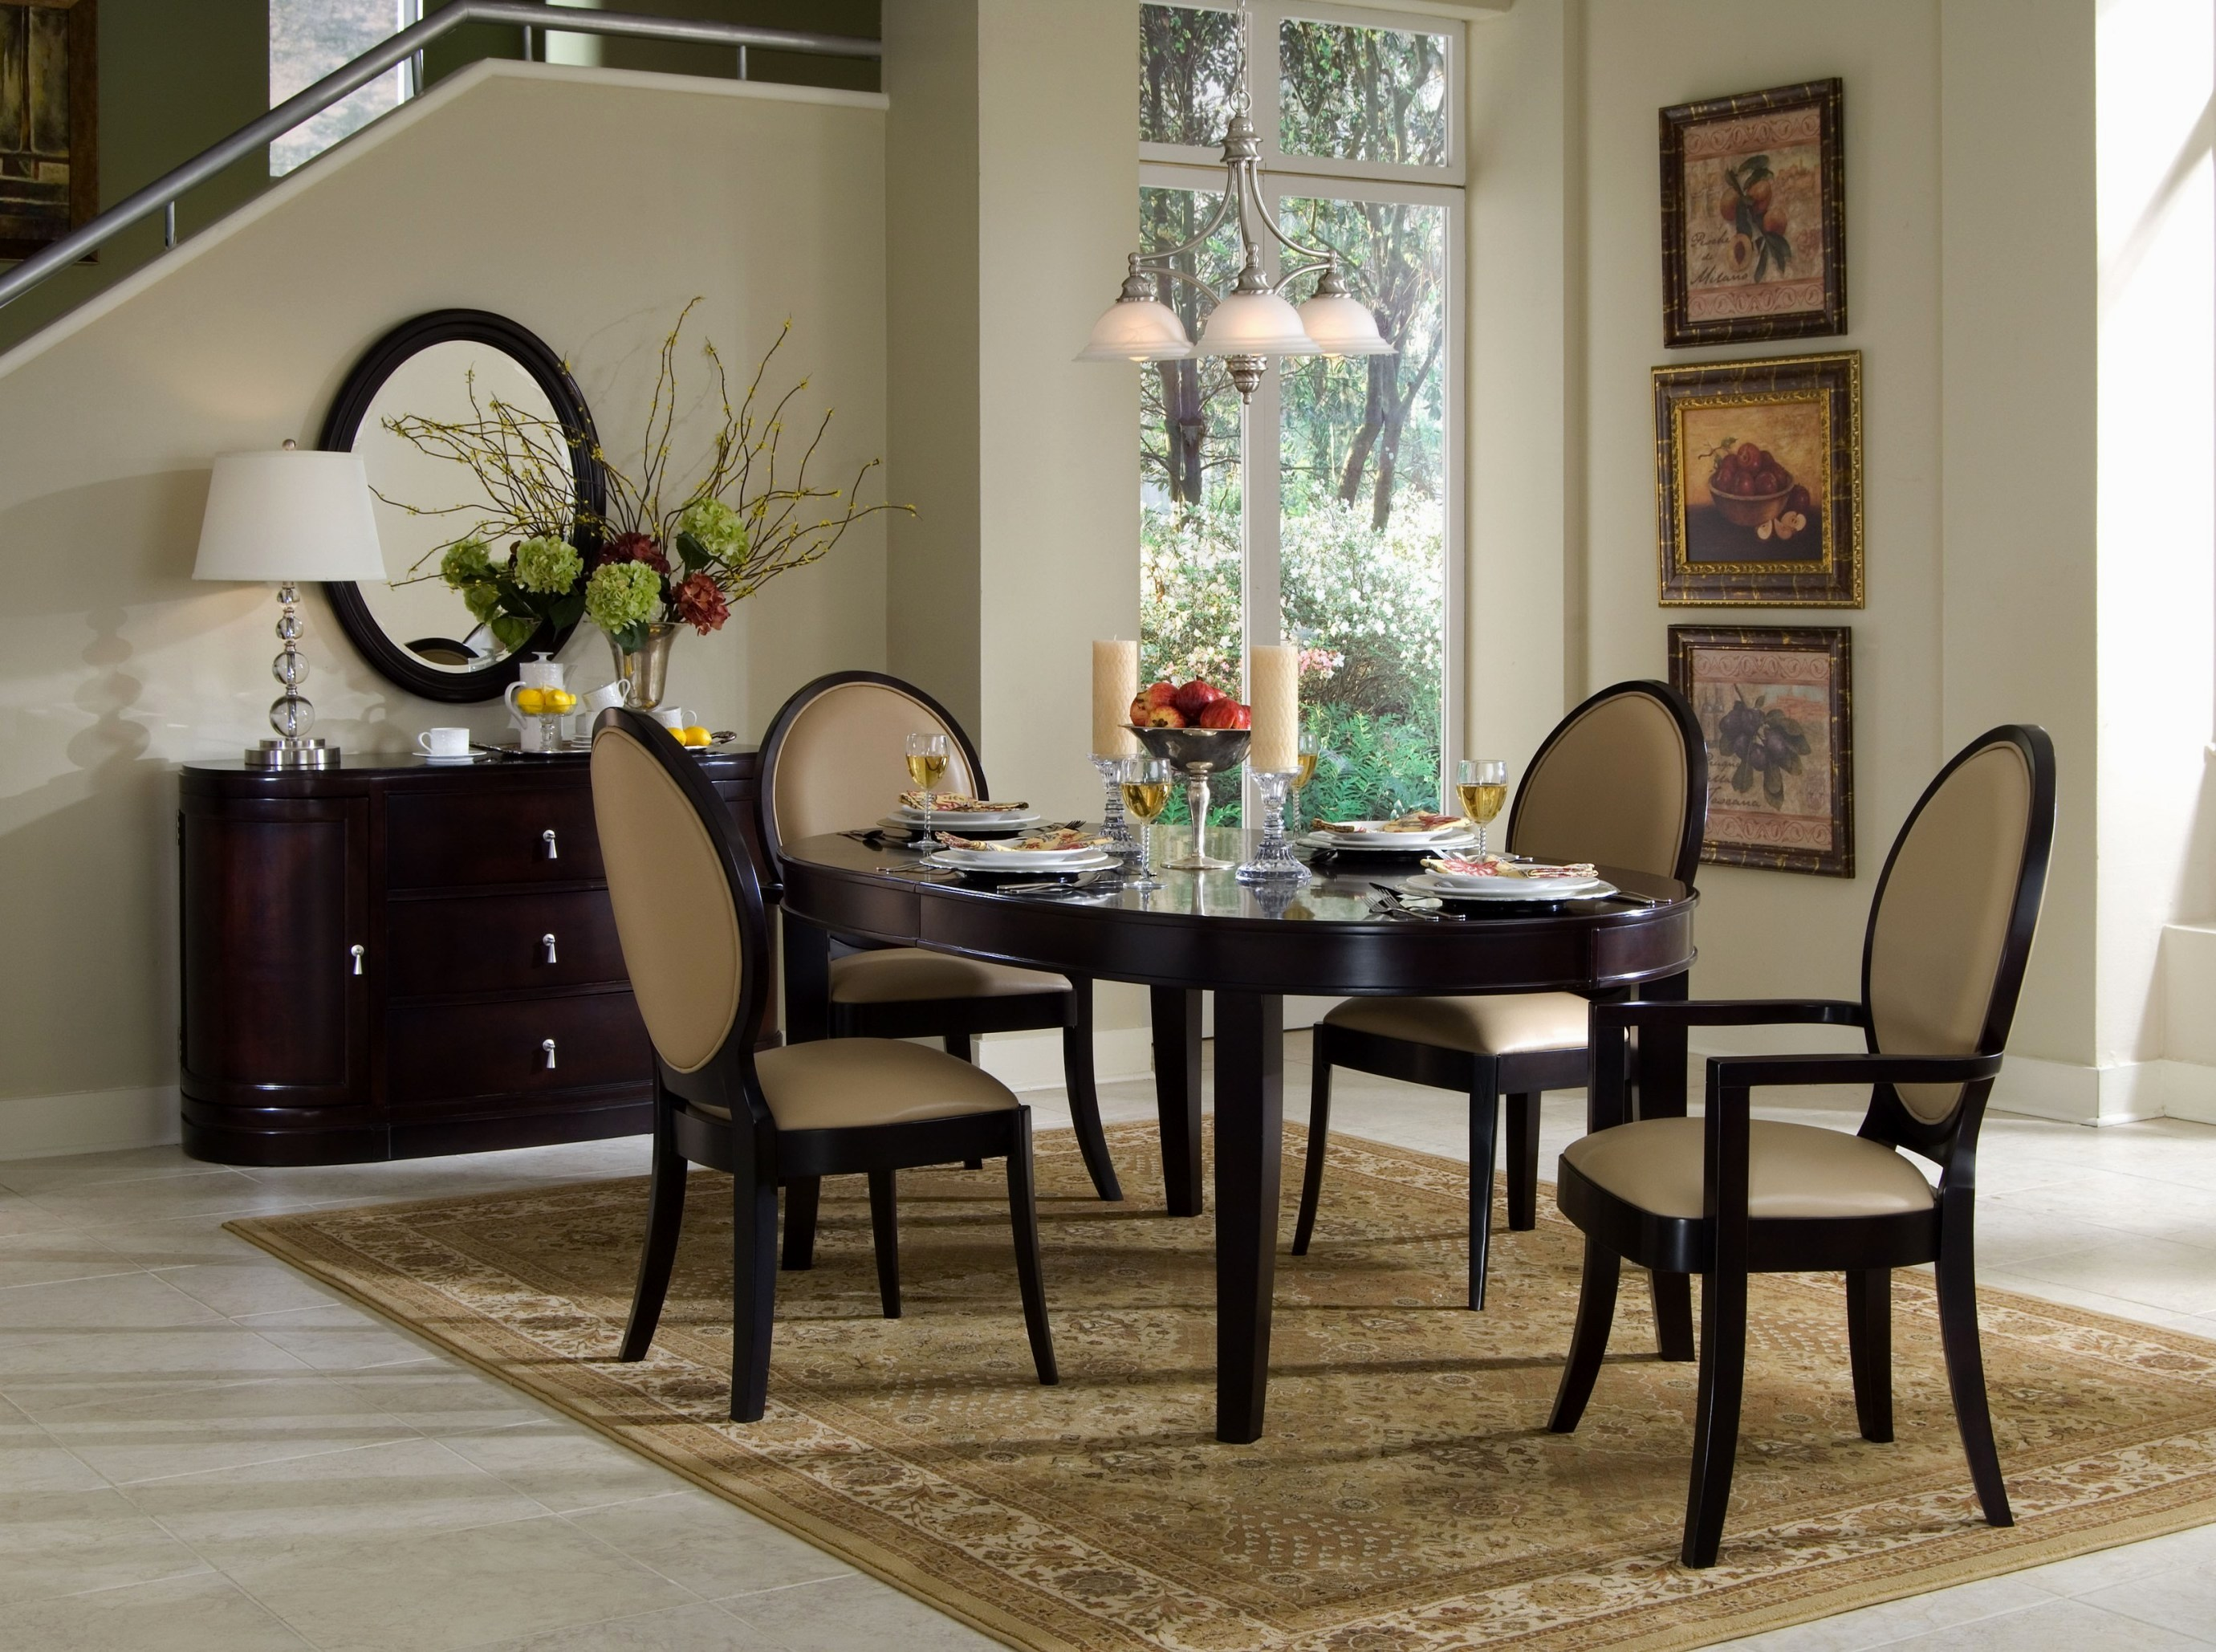 Adding To The Dining Room Elegance